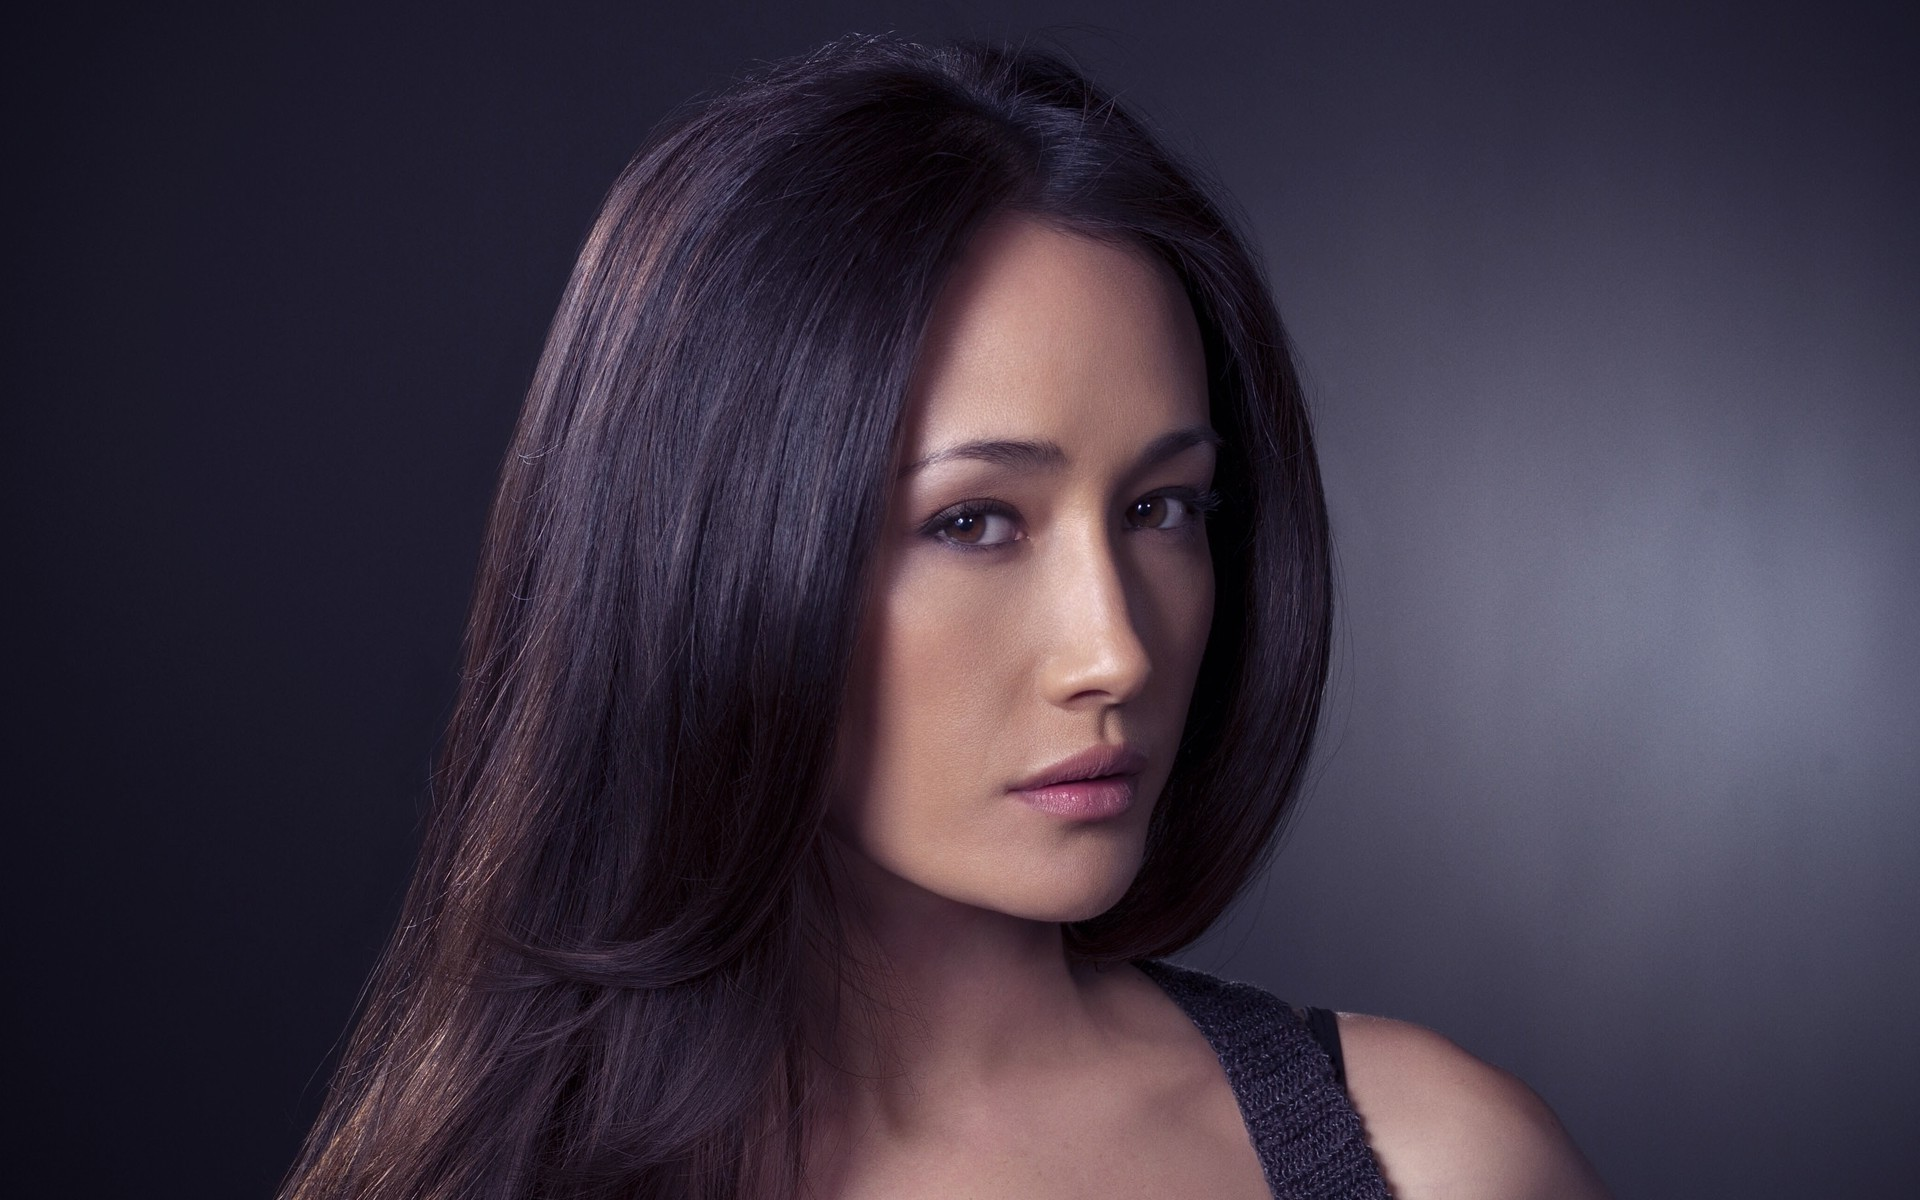 1920x1200 - Maggie Q Wallpapers 26